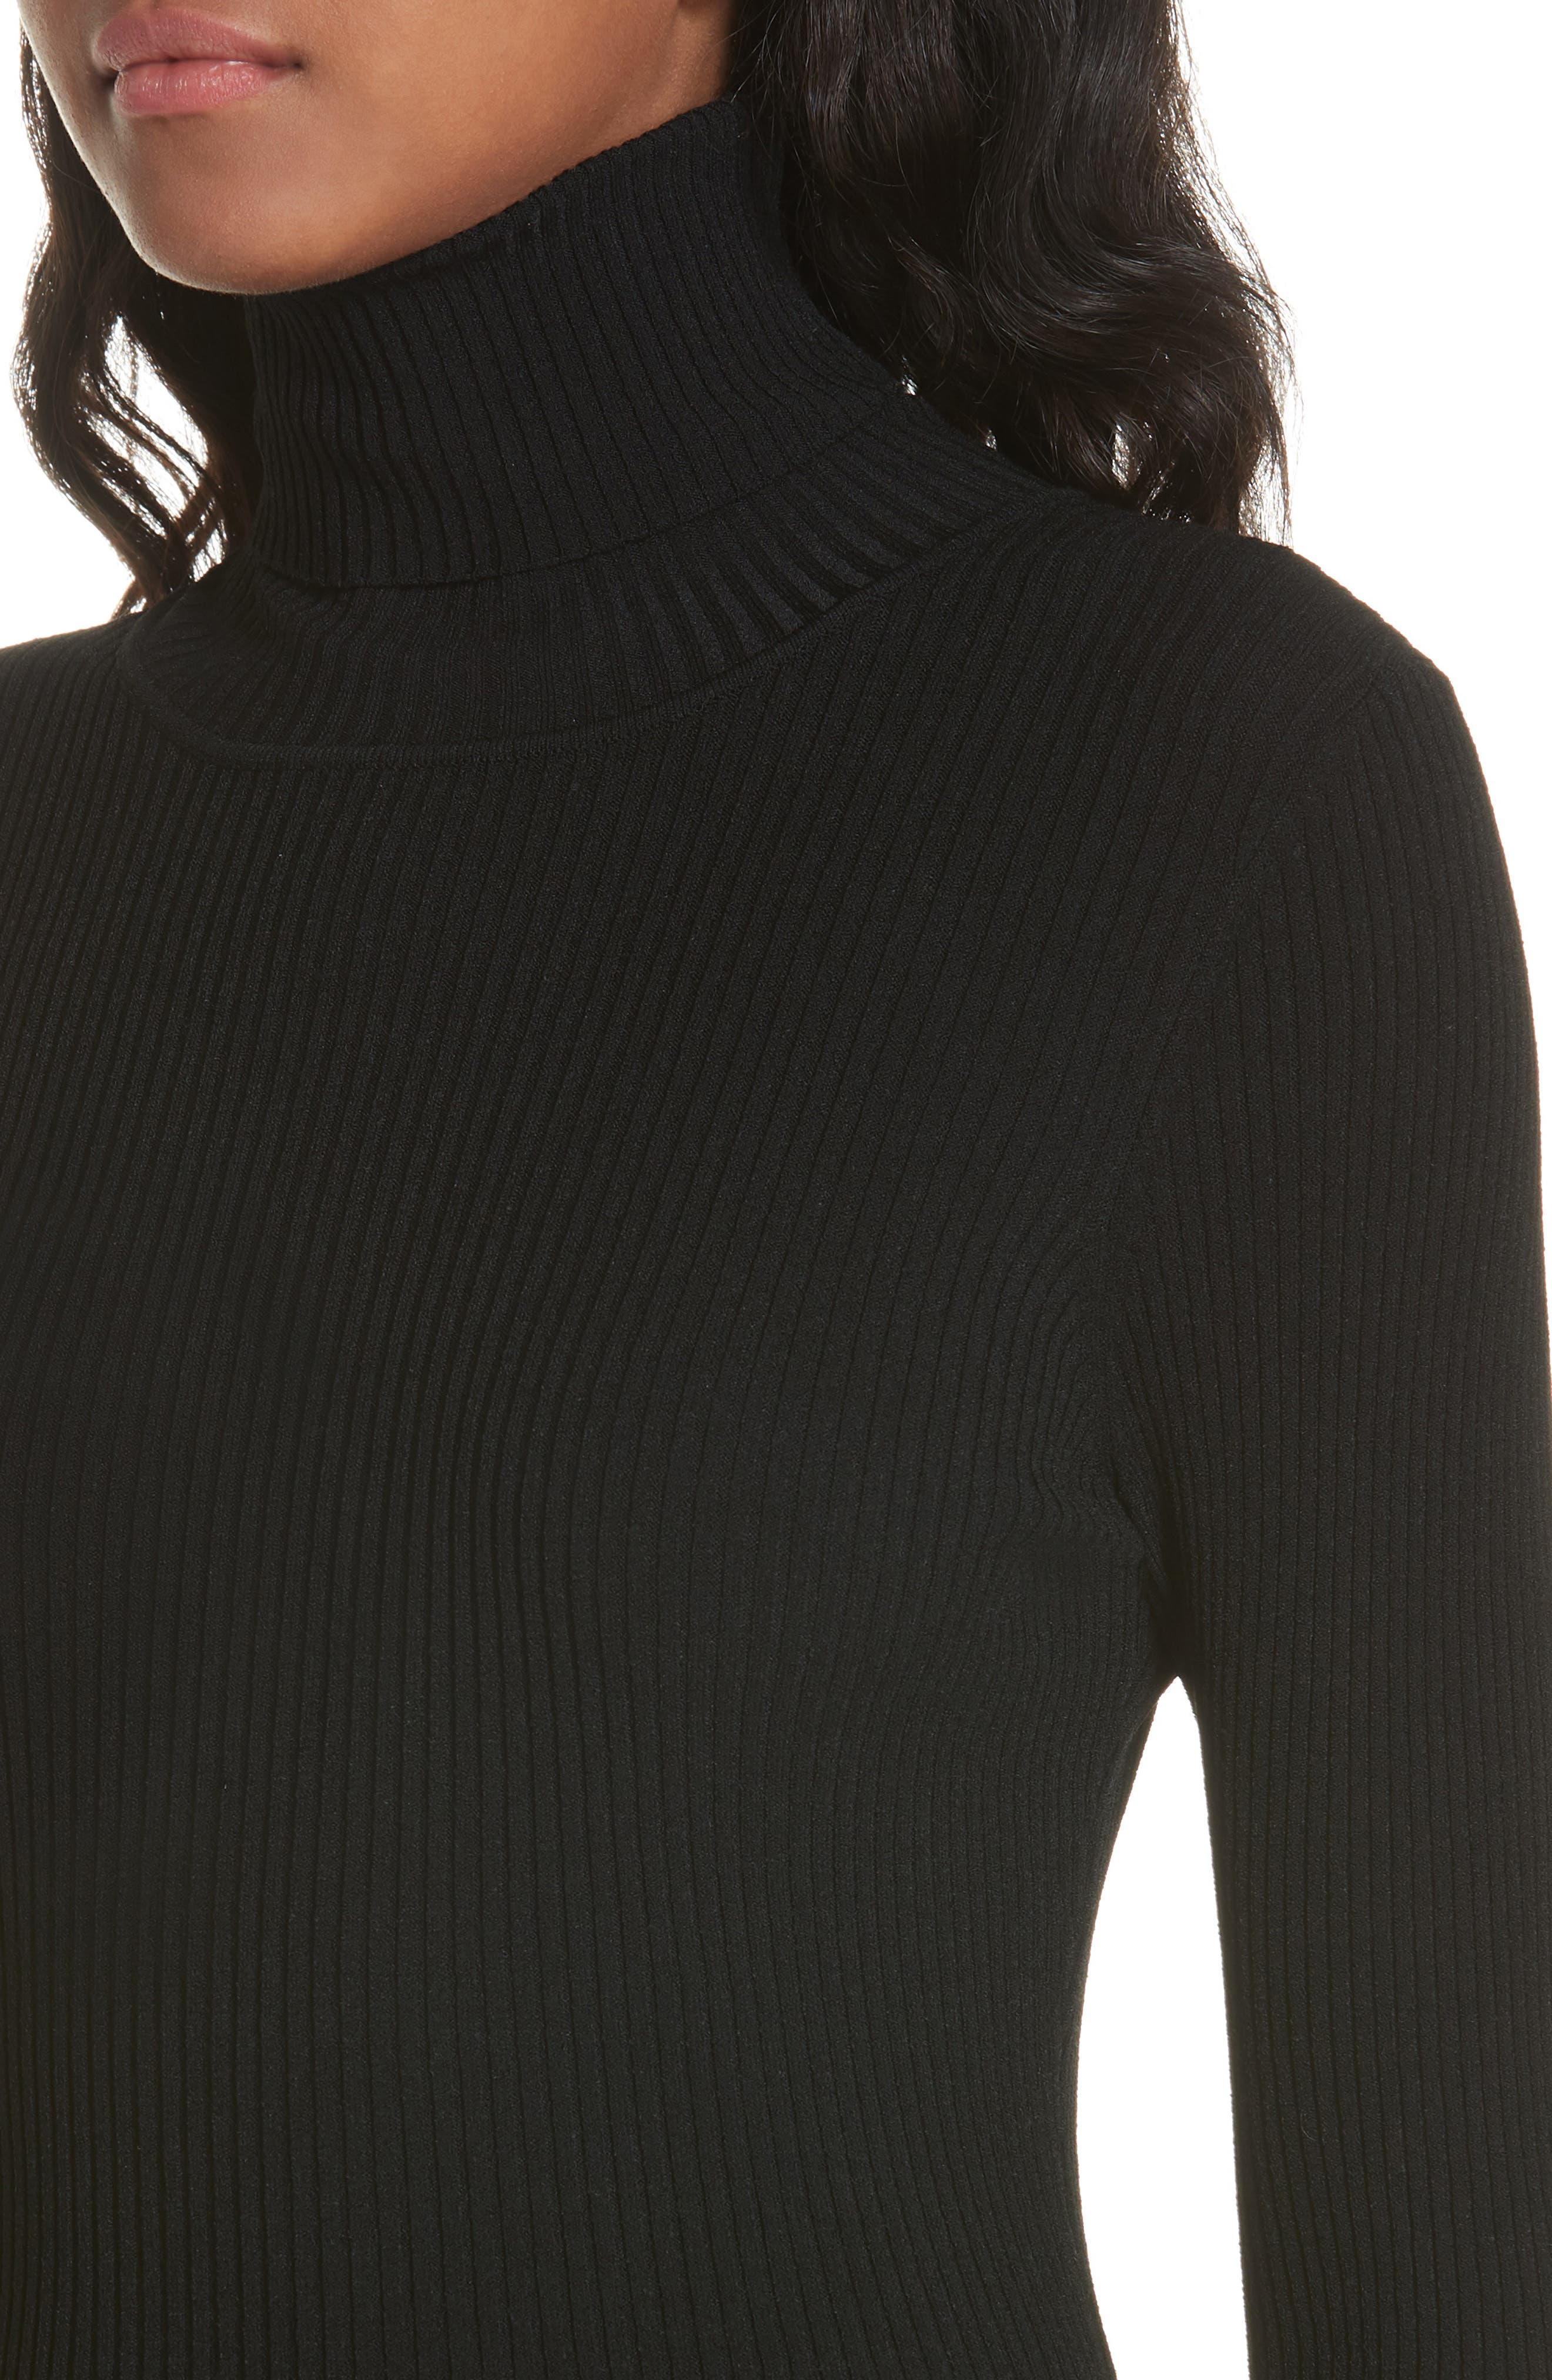 MILLY,                             Ribbed Turtleneck Sweater,                             Alternate thumbnail 4, color,                             001